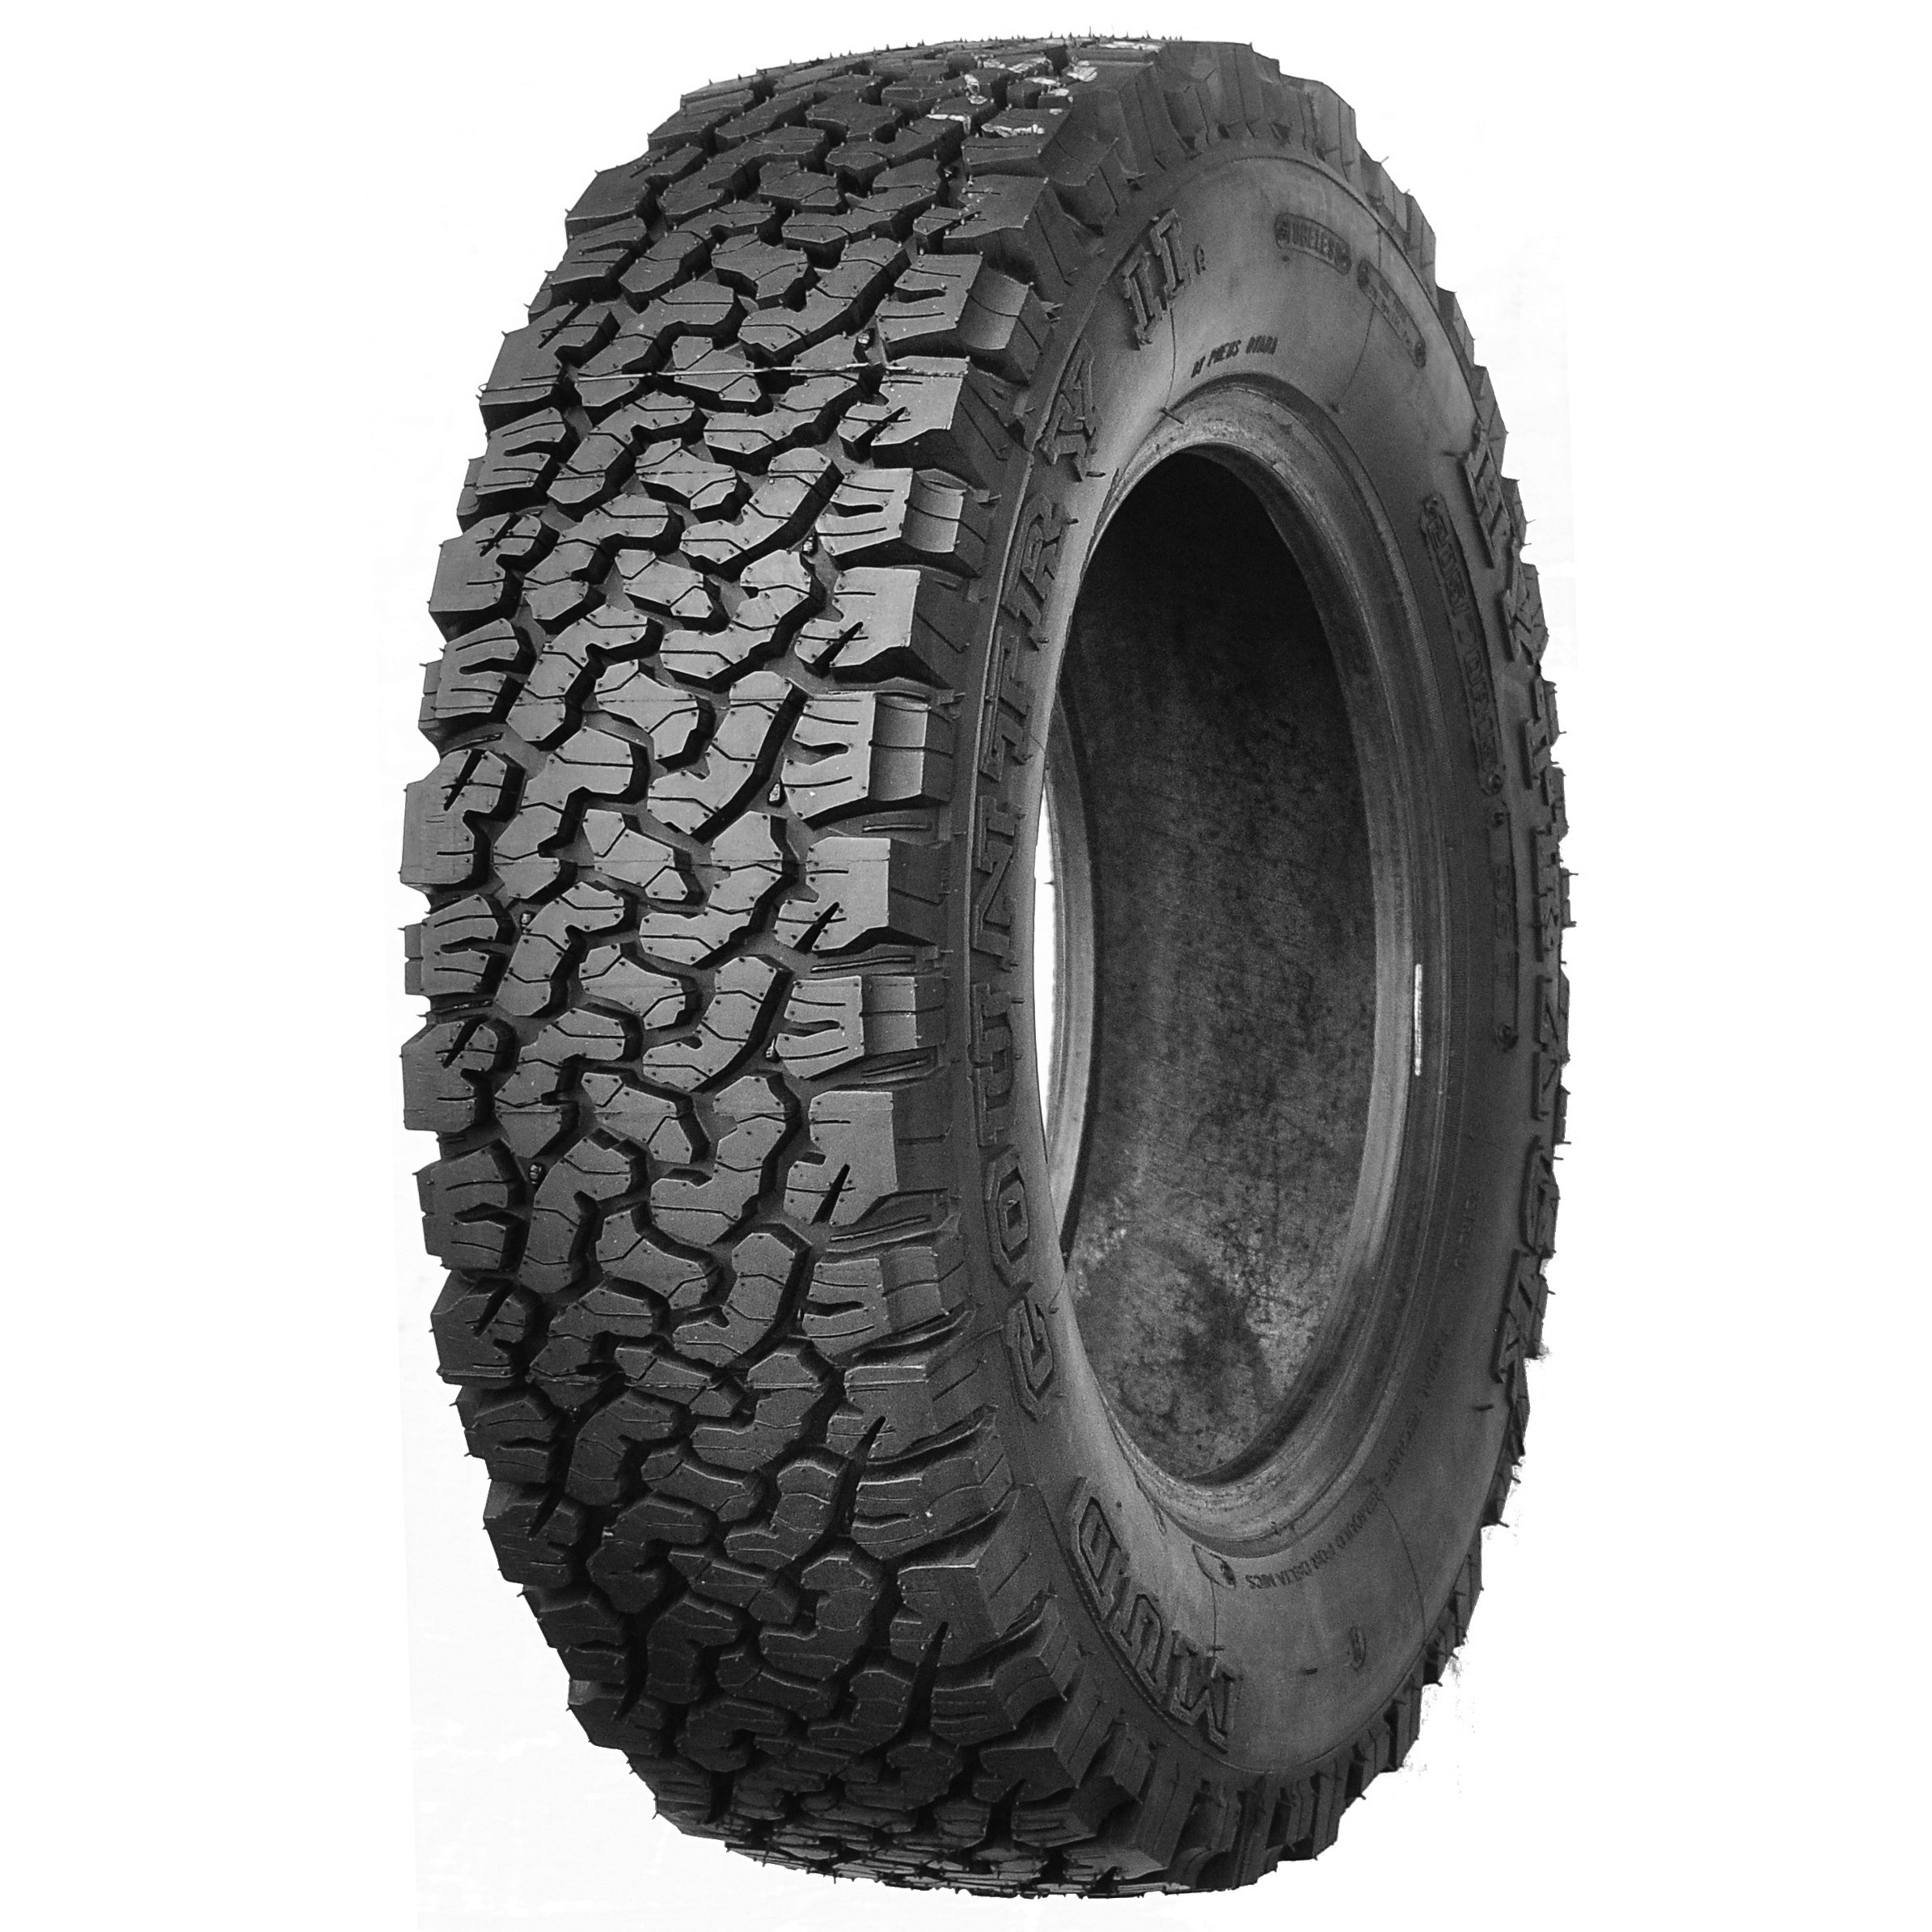 Good Year Tire Sale >> Off-road tire BFG KO2 205/70 R15 Italian company Pneus Ovada